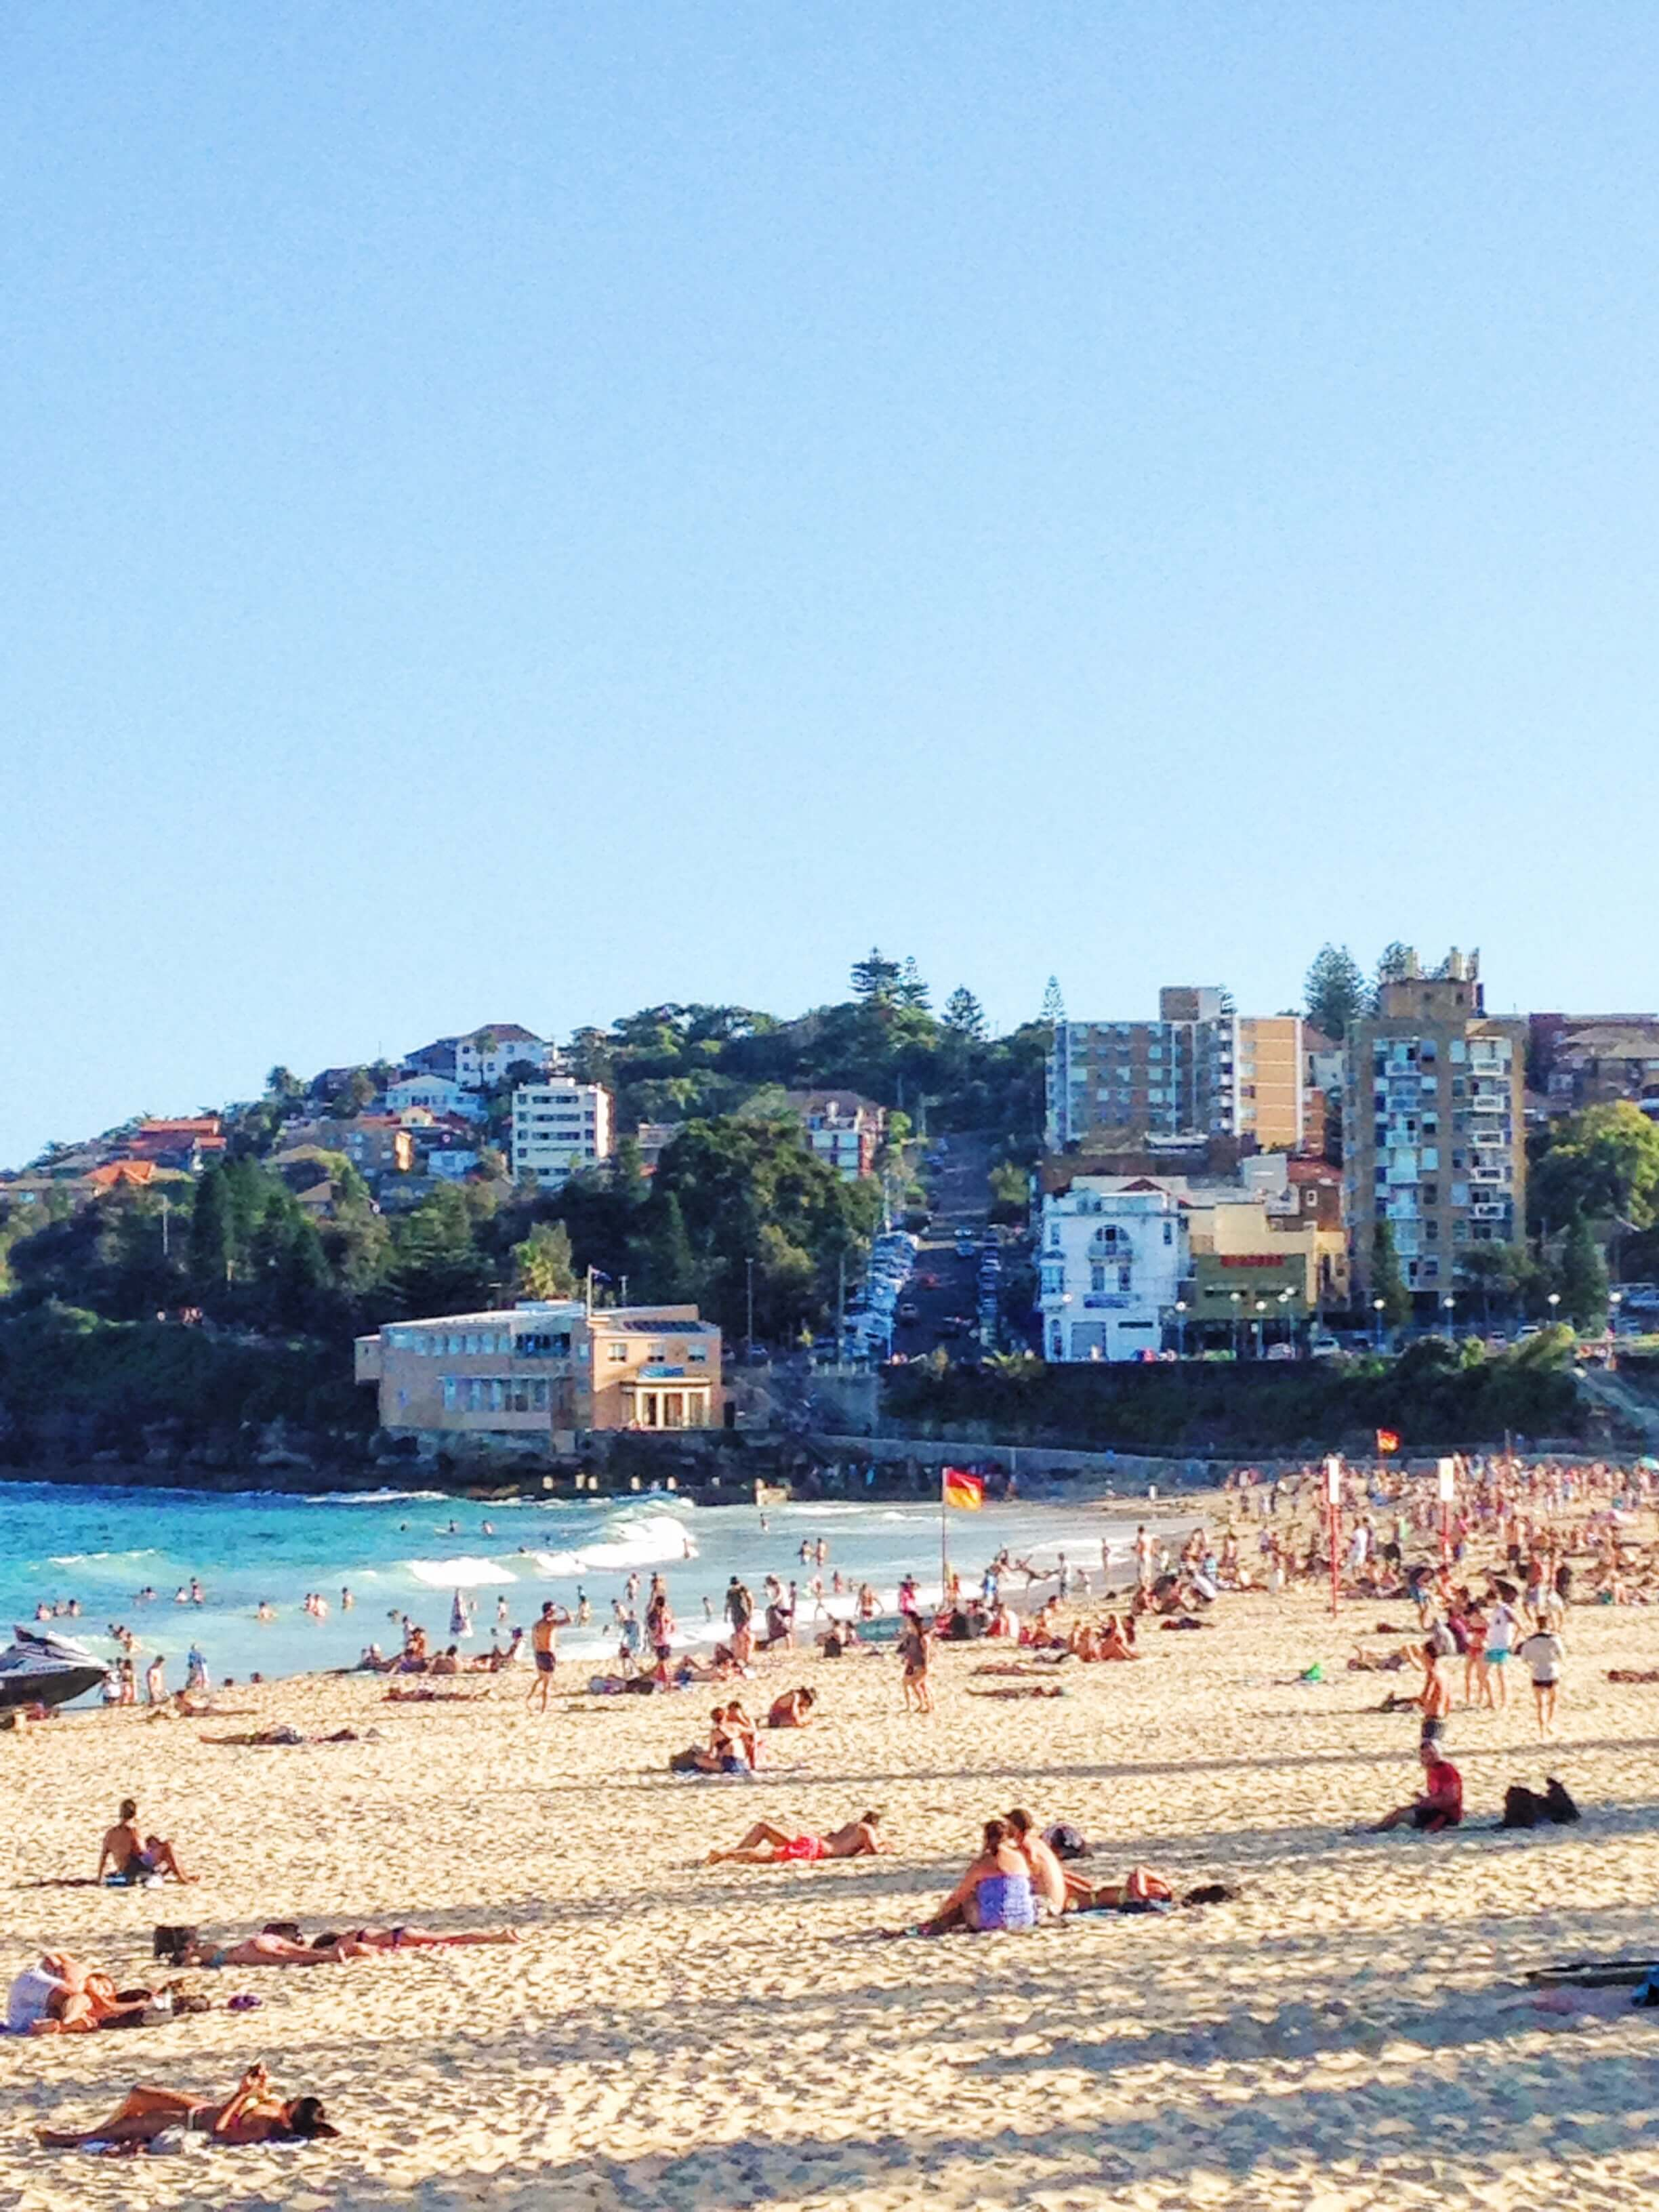 Looking south down Coogee Beach